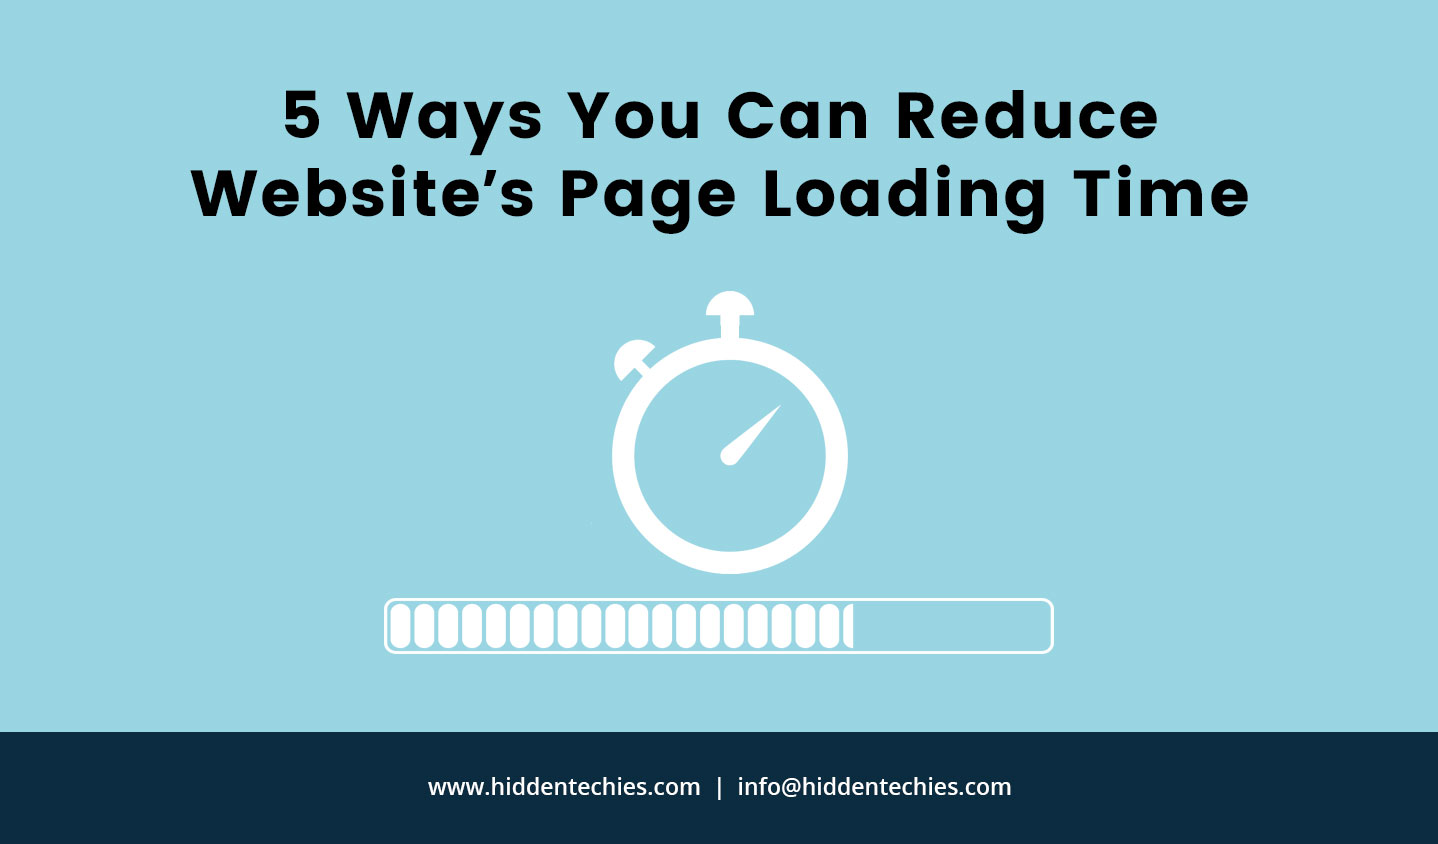 5 Ways You Can Reduce Website's Page Loading Time - HiddenTechies